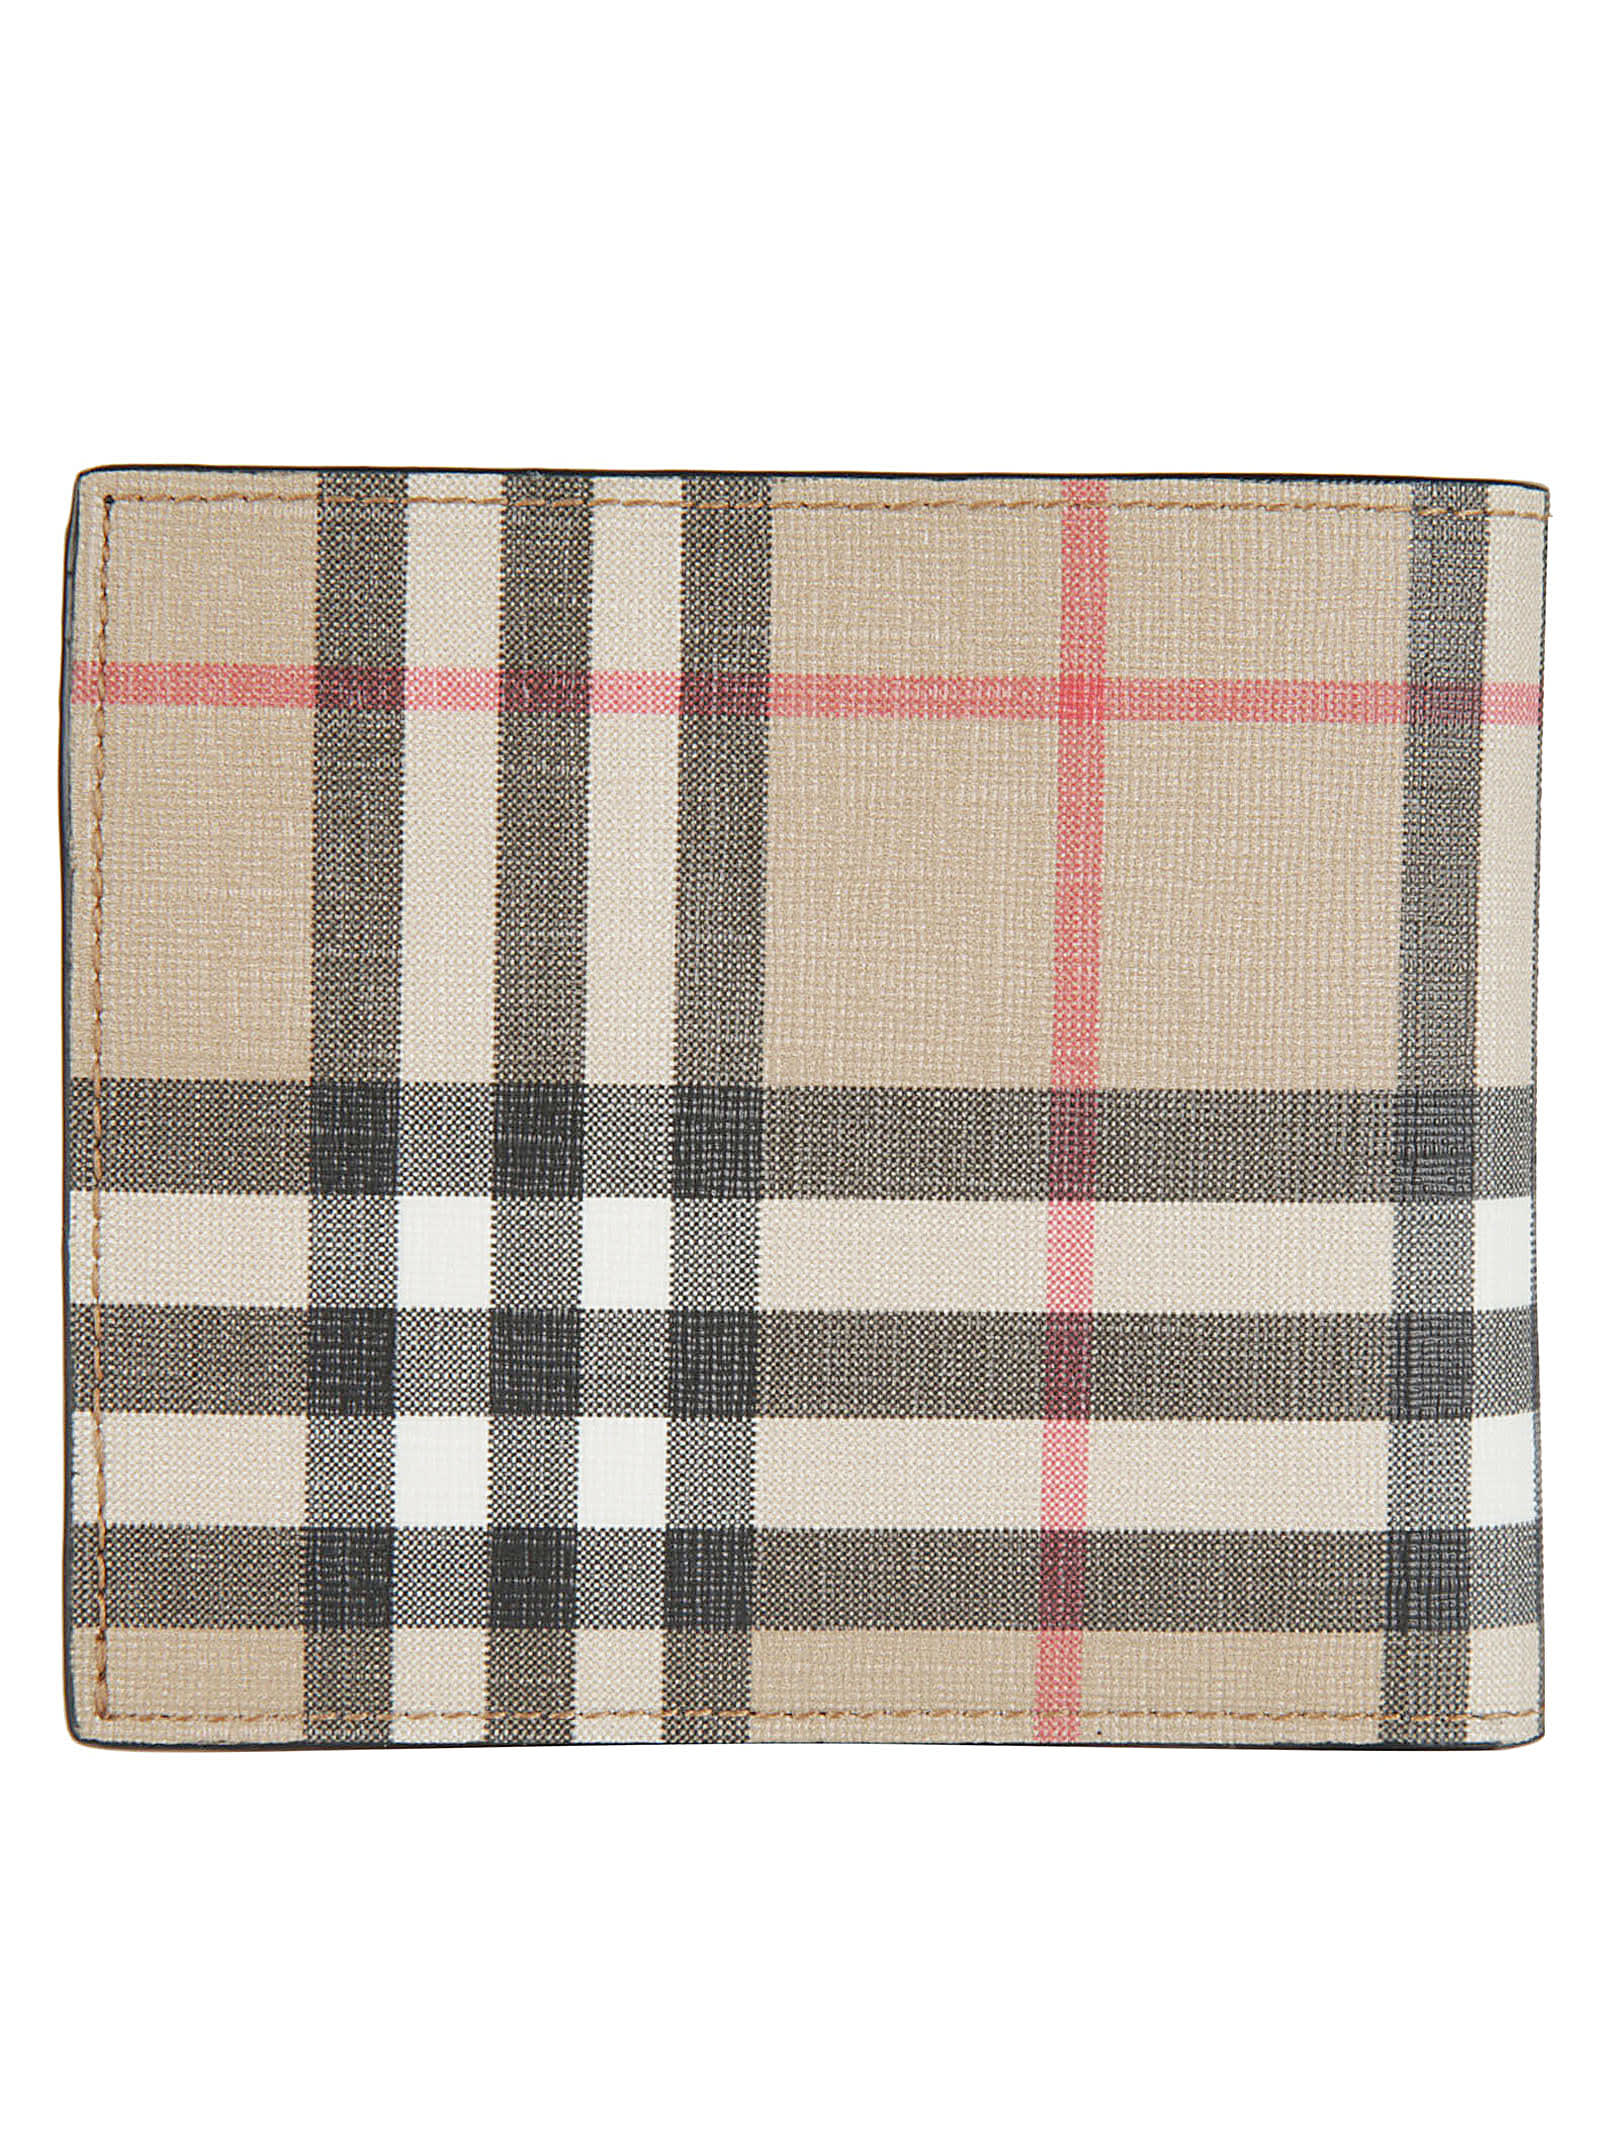 Buy Newest Burberry Vintage Check Bifold Wallet